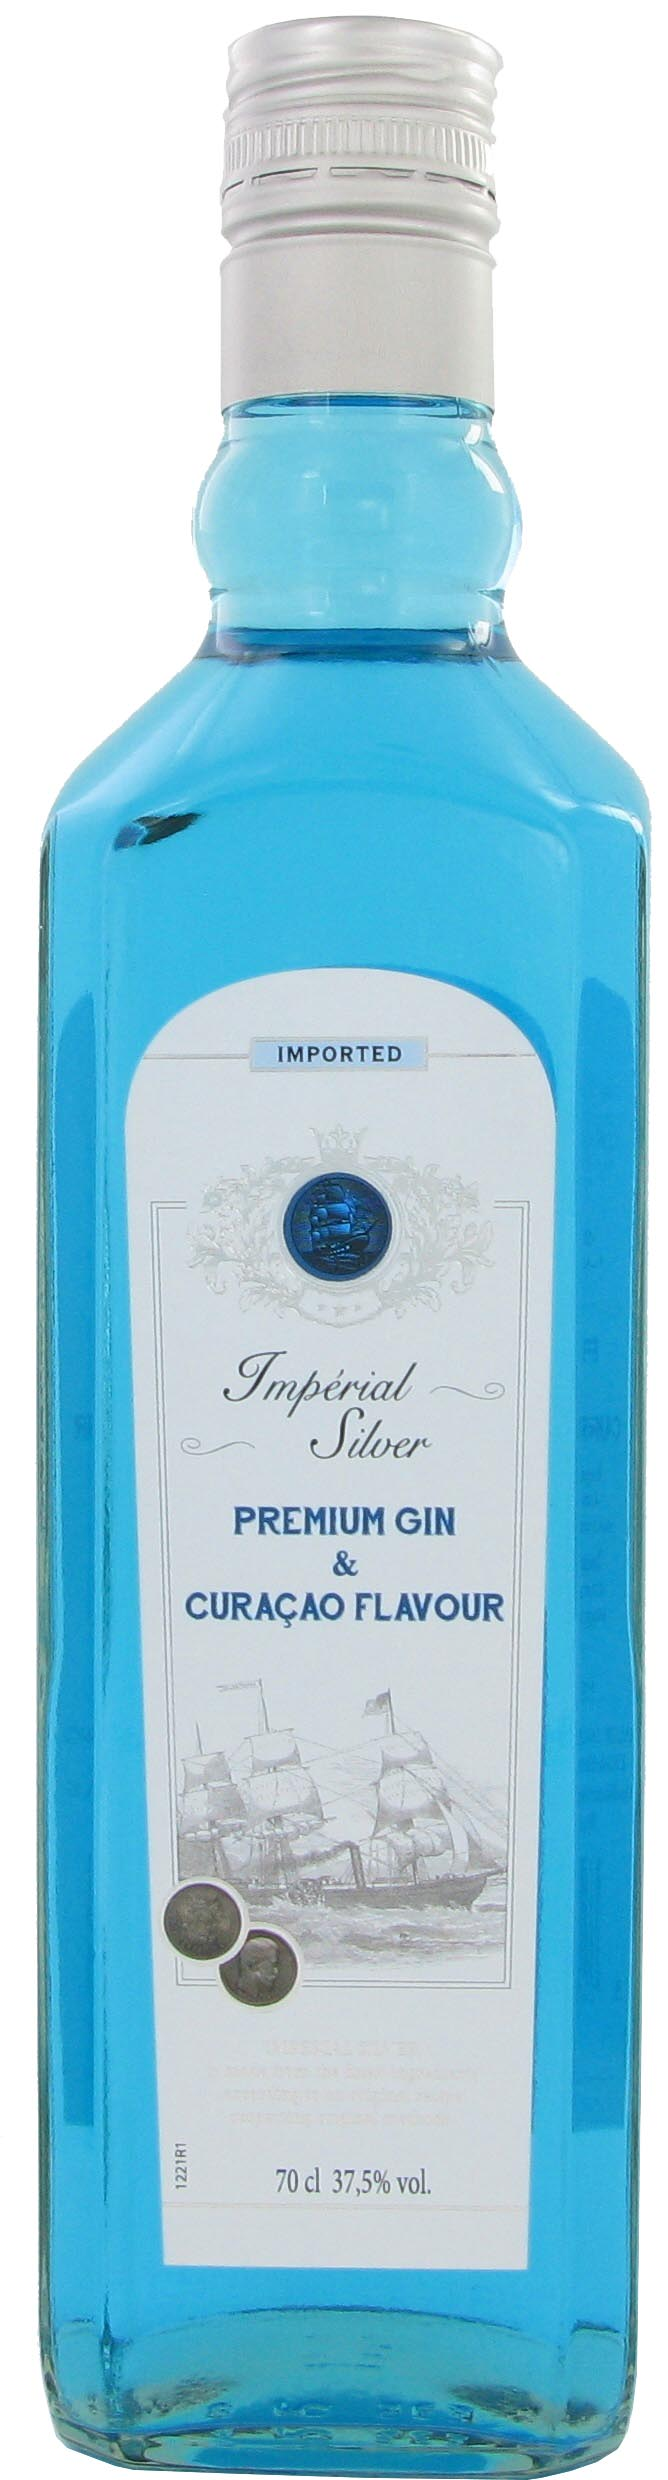 GIN IMPERIAL SILVER CURACAO FLAVOUR